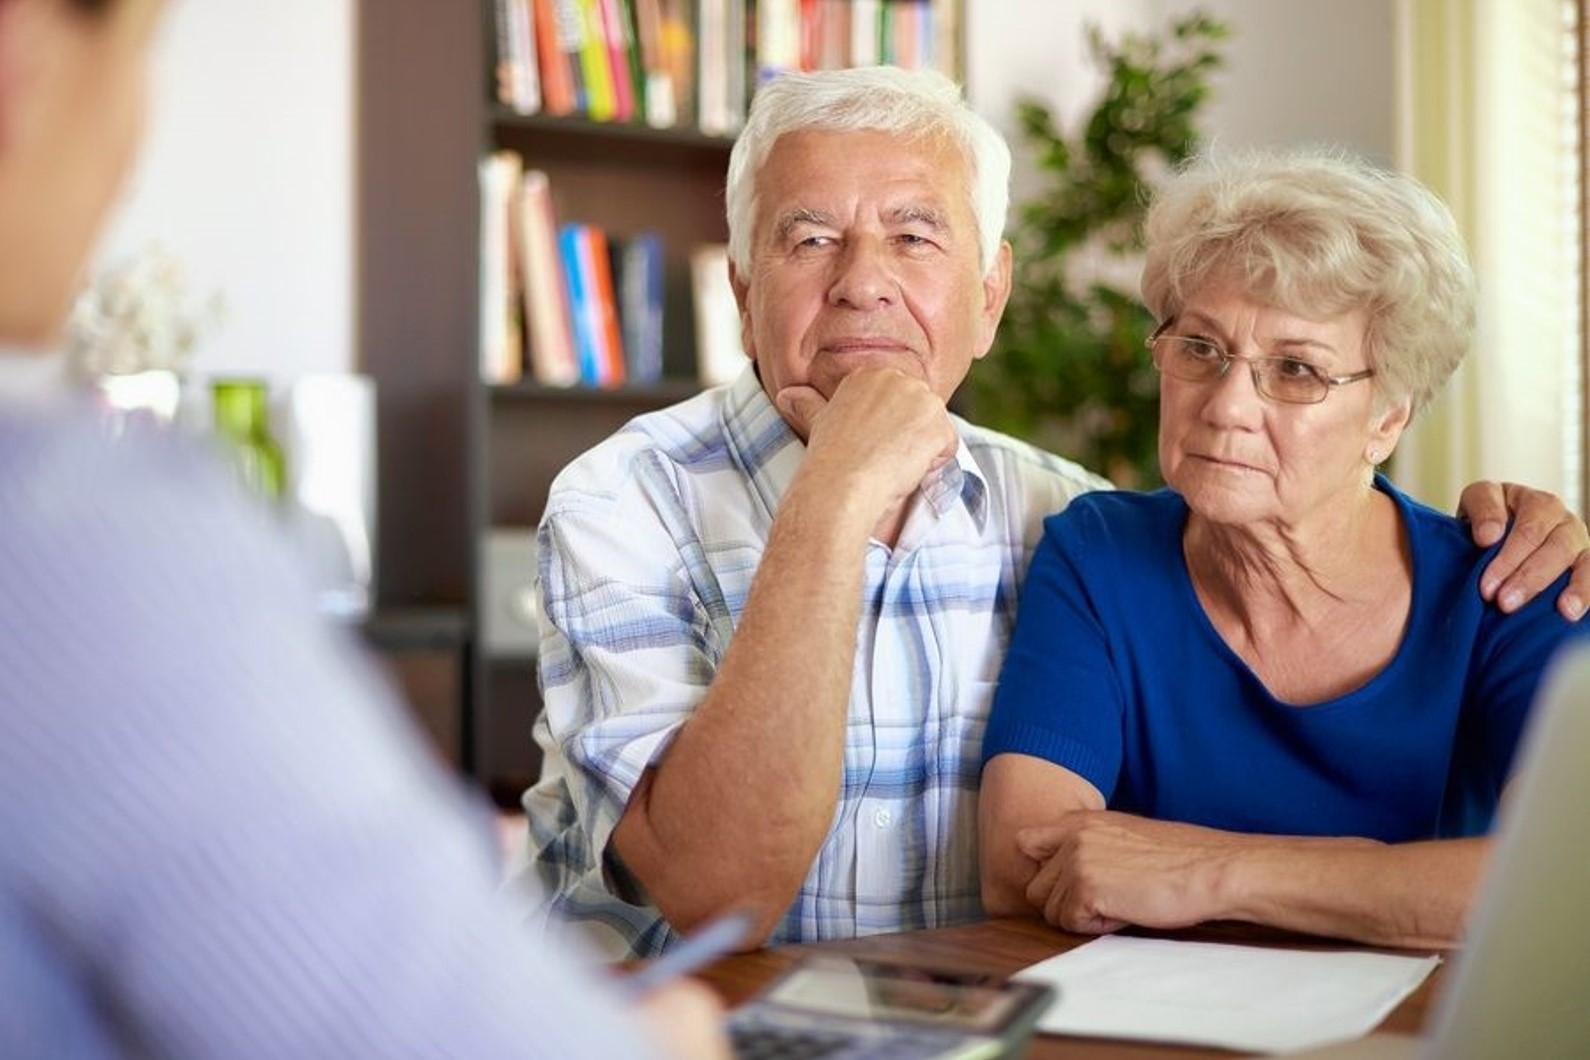 6 Common Mistakes to Avoid When Selecting Medicare Advantage Plans